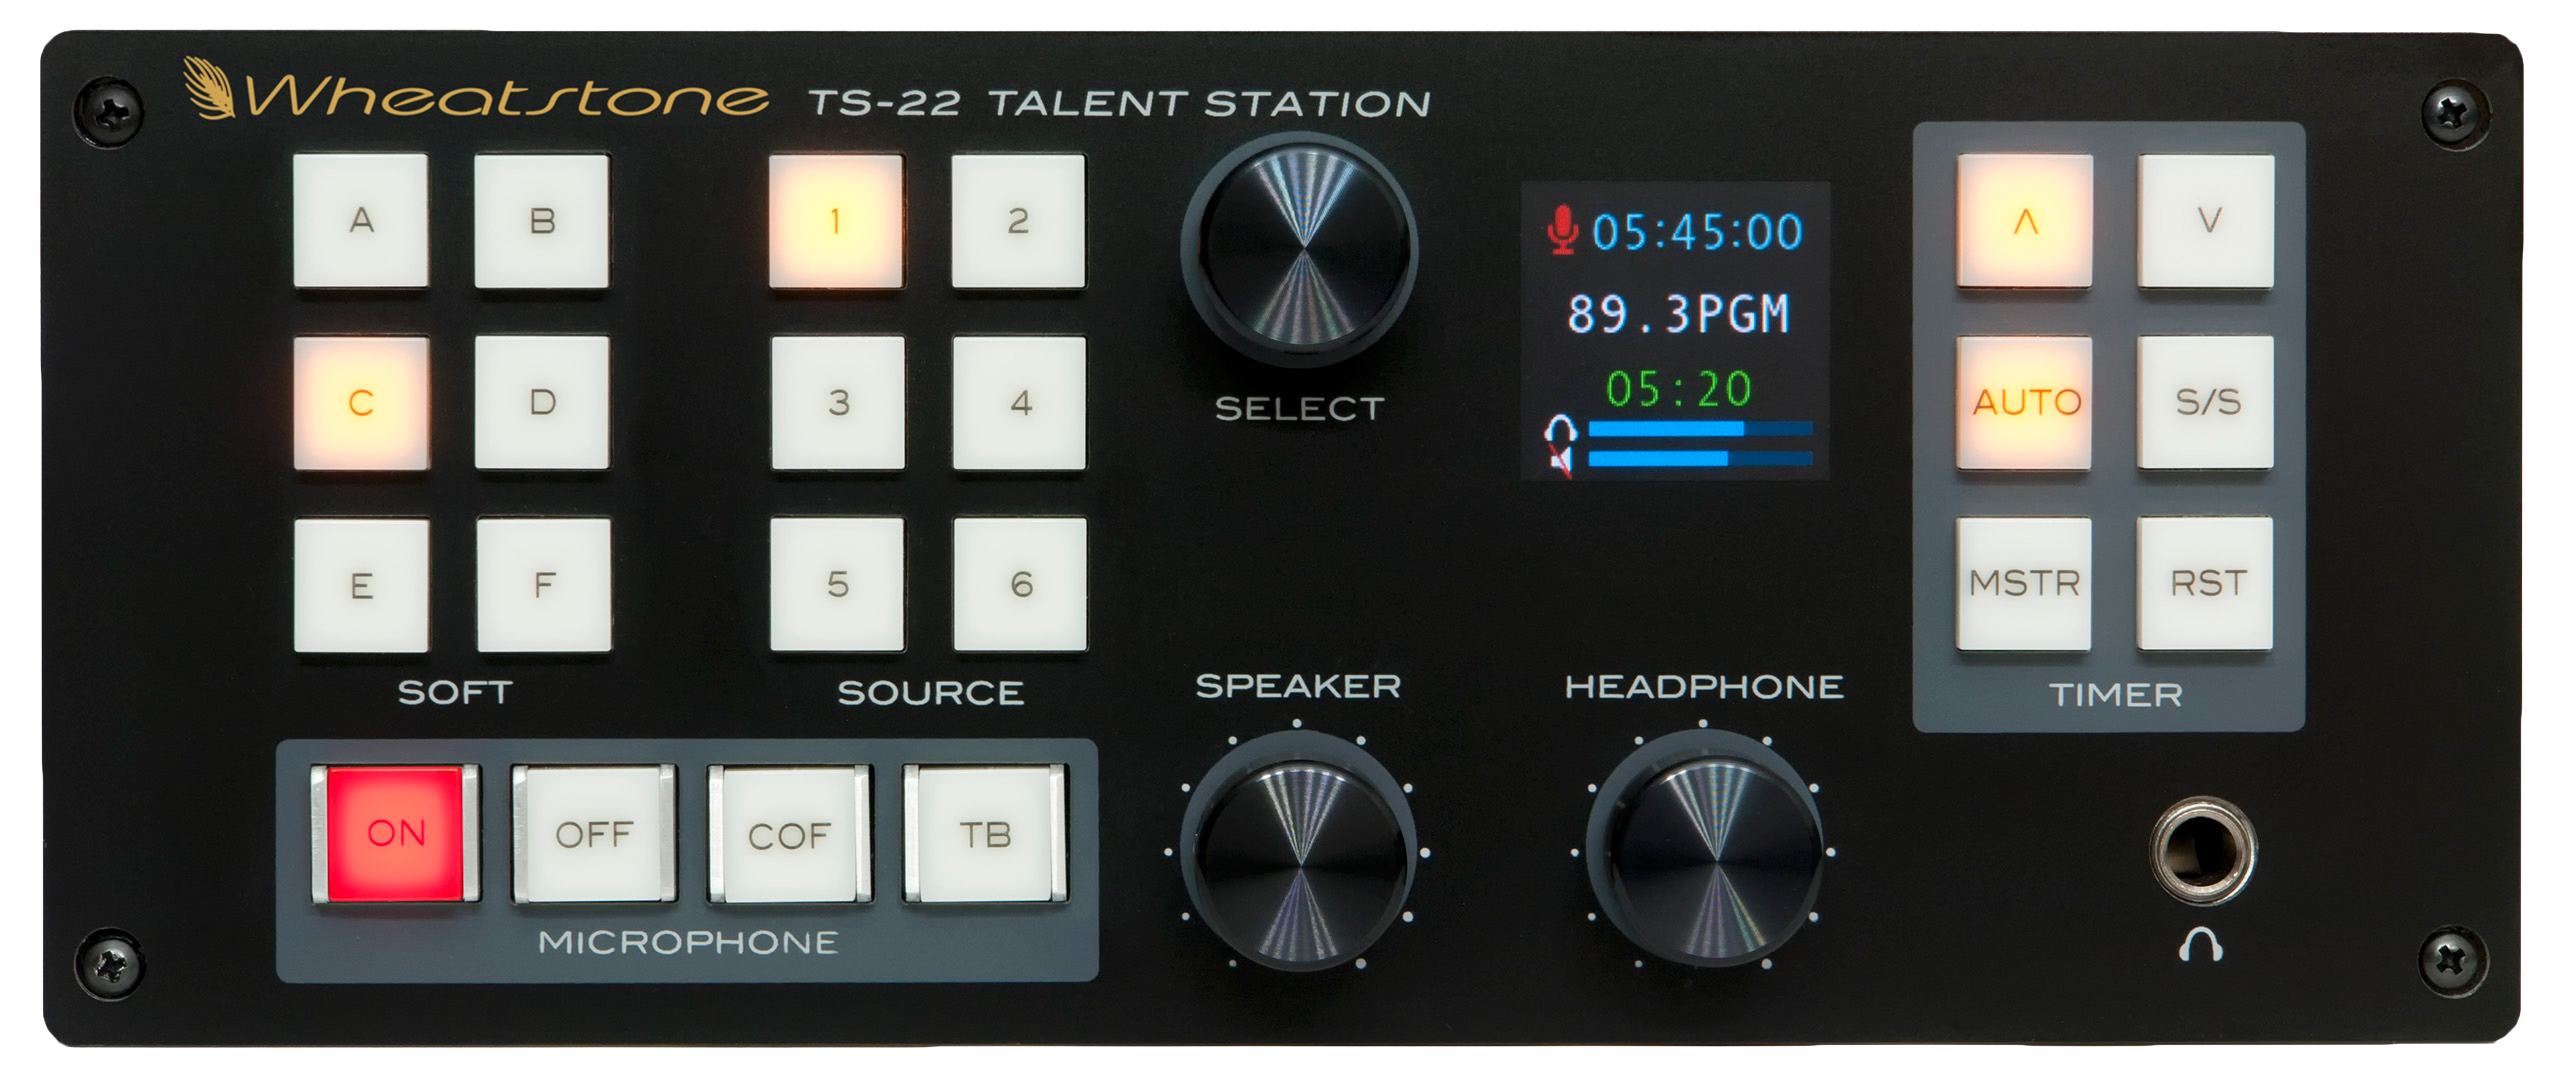 TS 22 Talent Station 2560